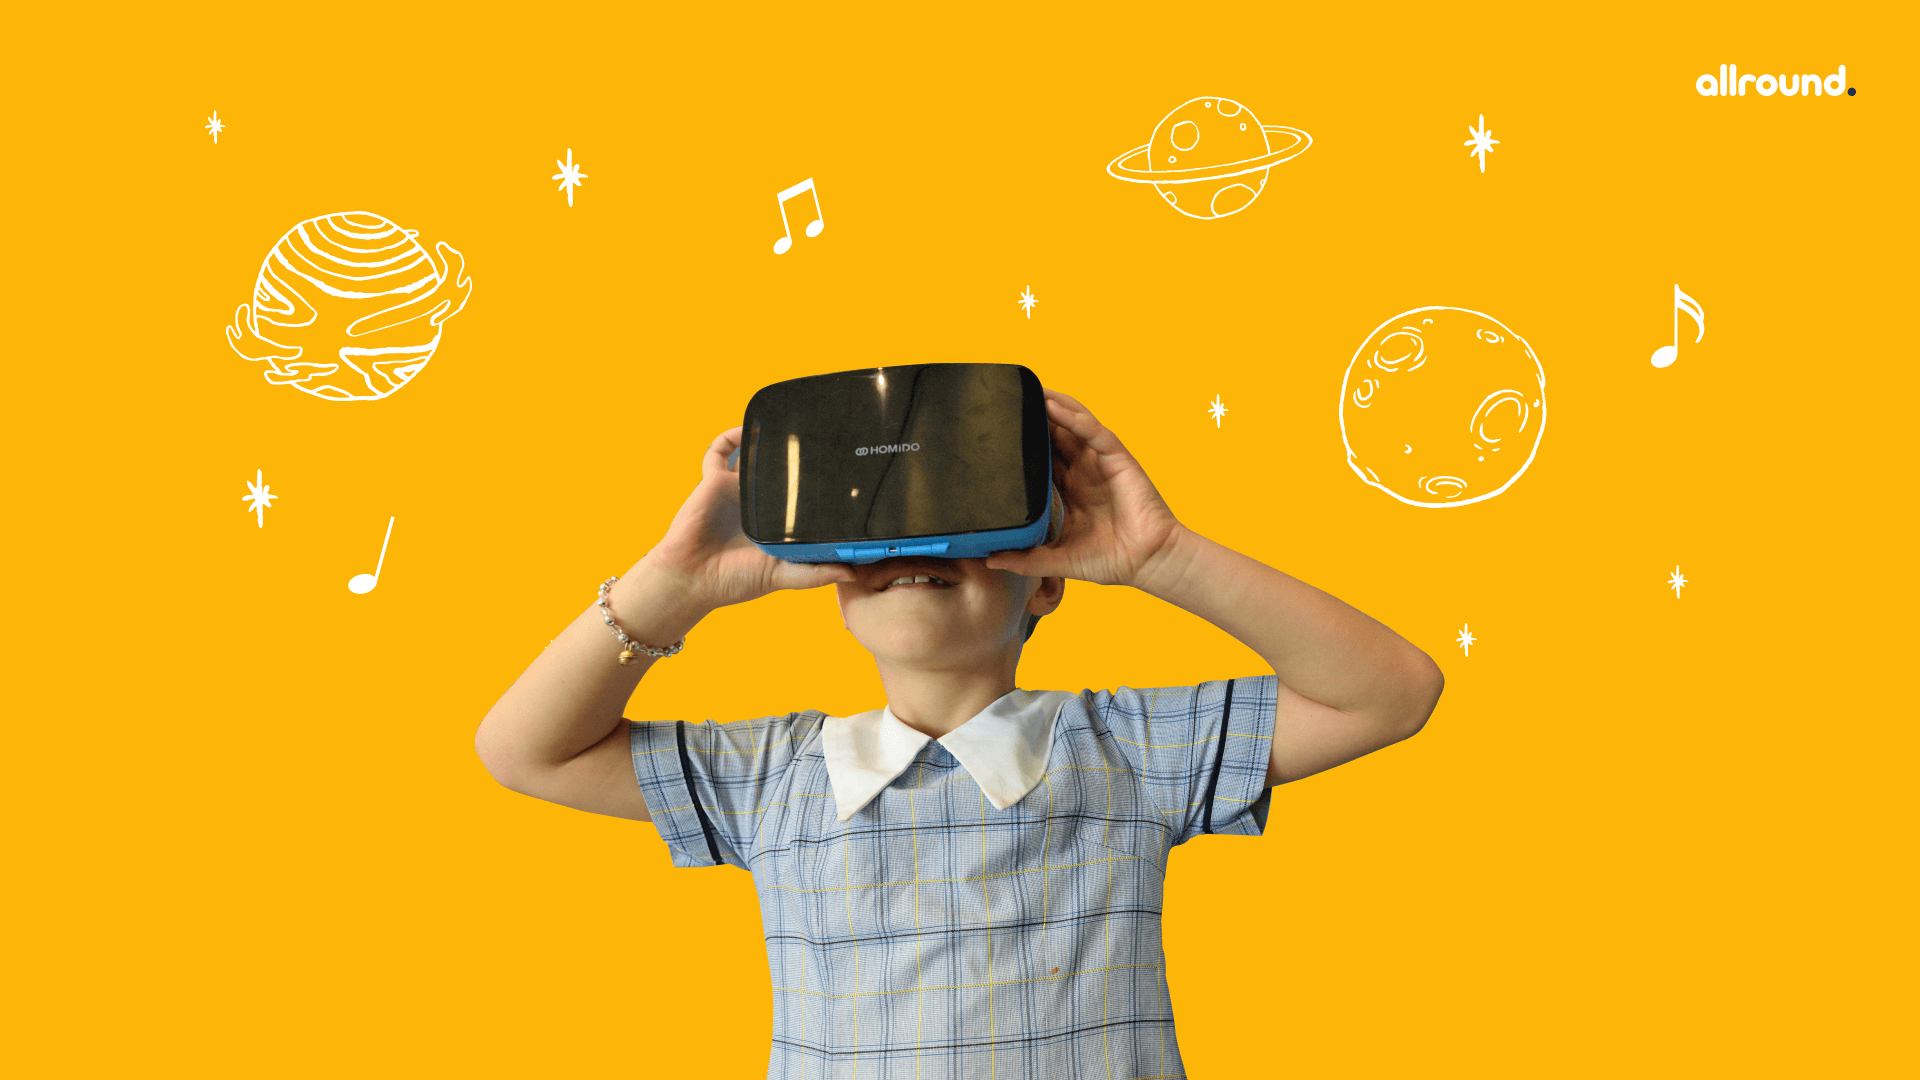 The Future of the Music Experience